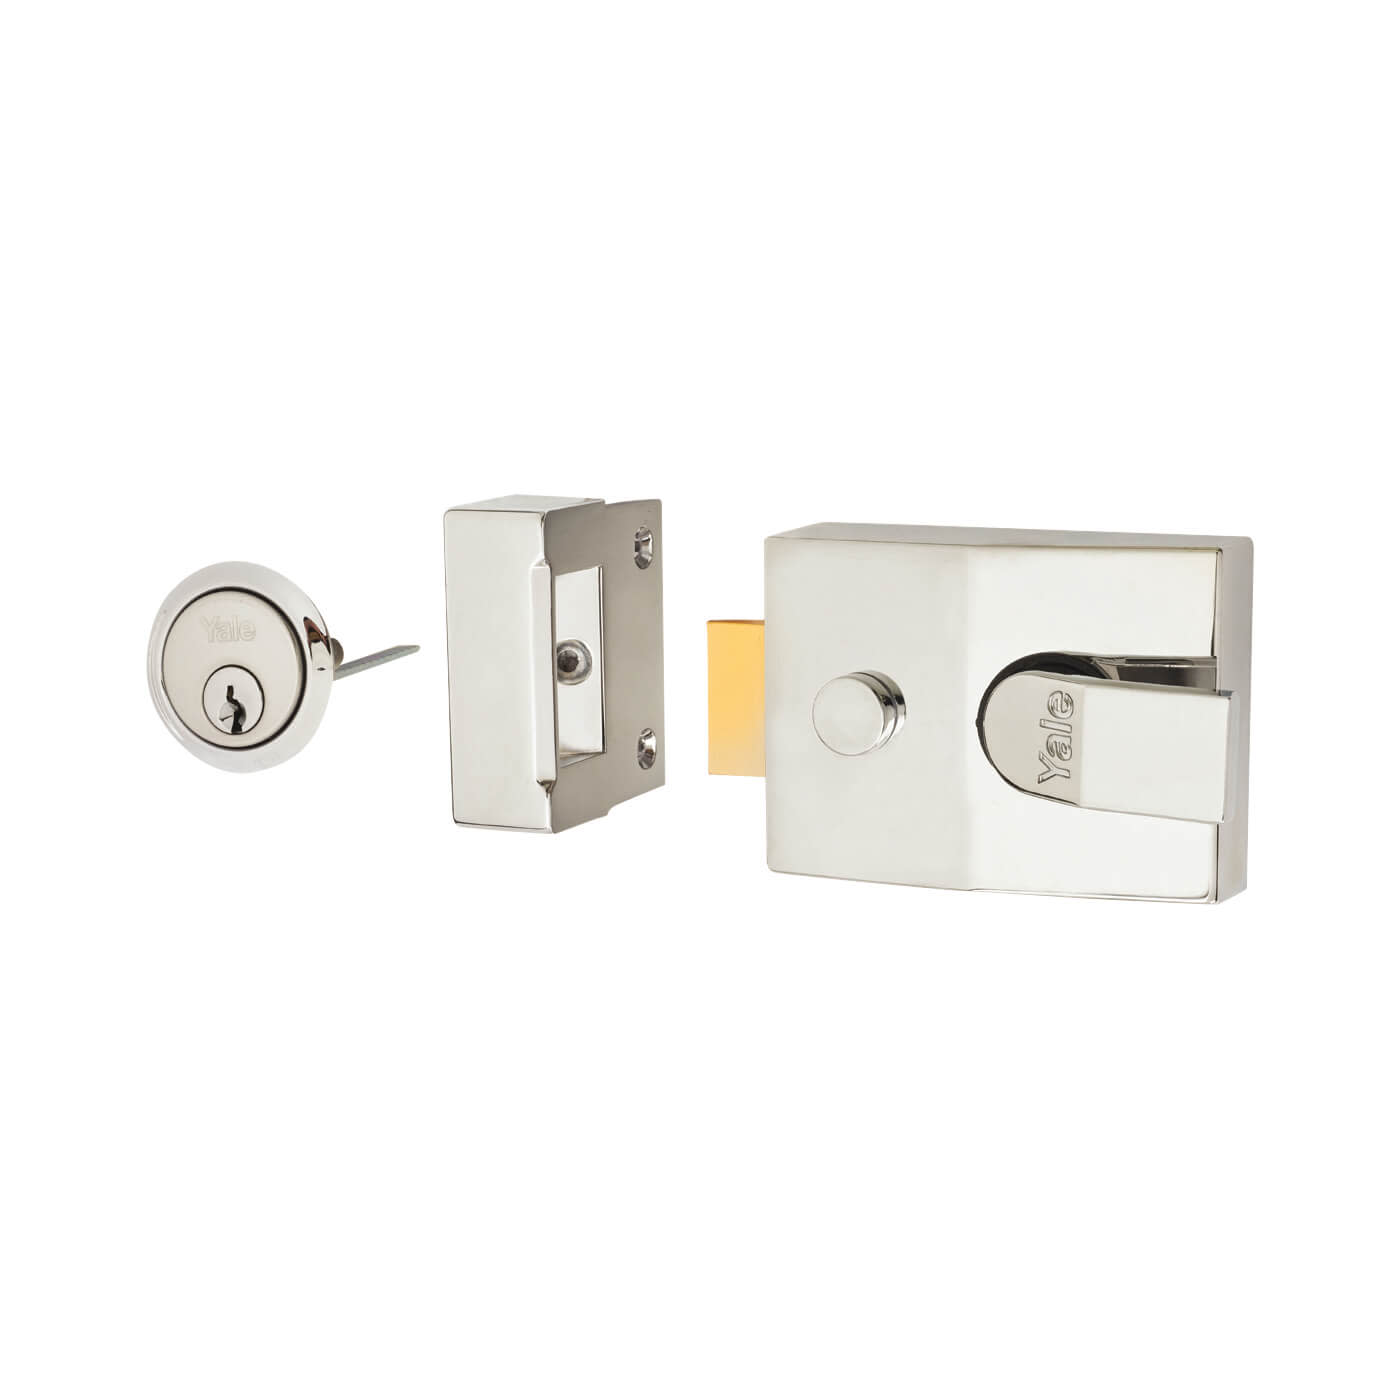 Yale® 89 Double Locking Nightlatch - 60mm Backset - Polished Chrome Case/Cylinder)